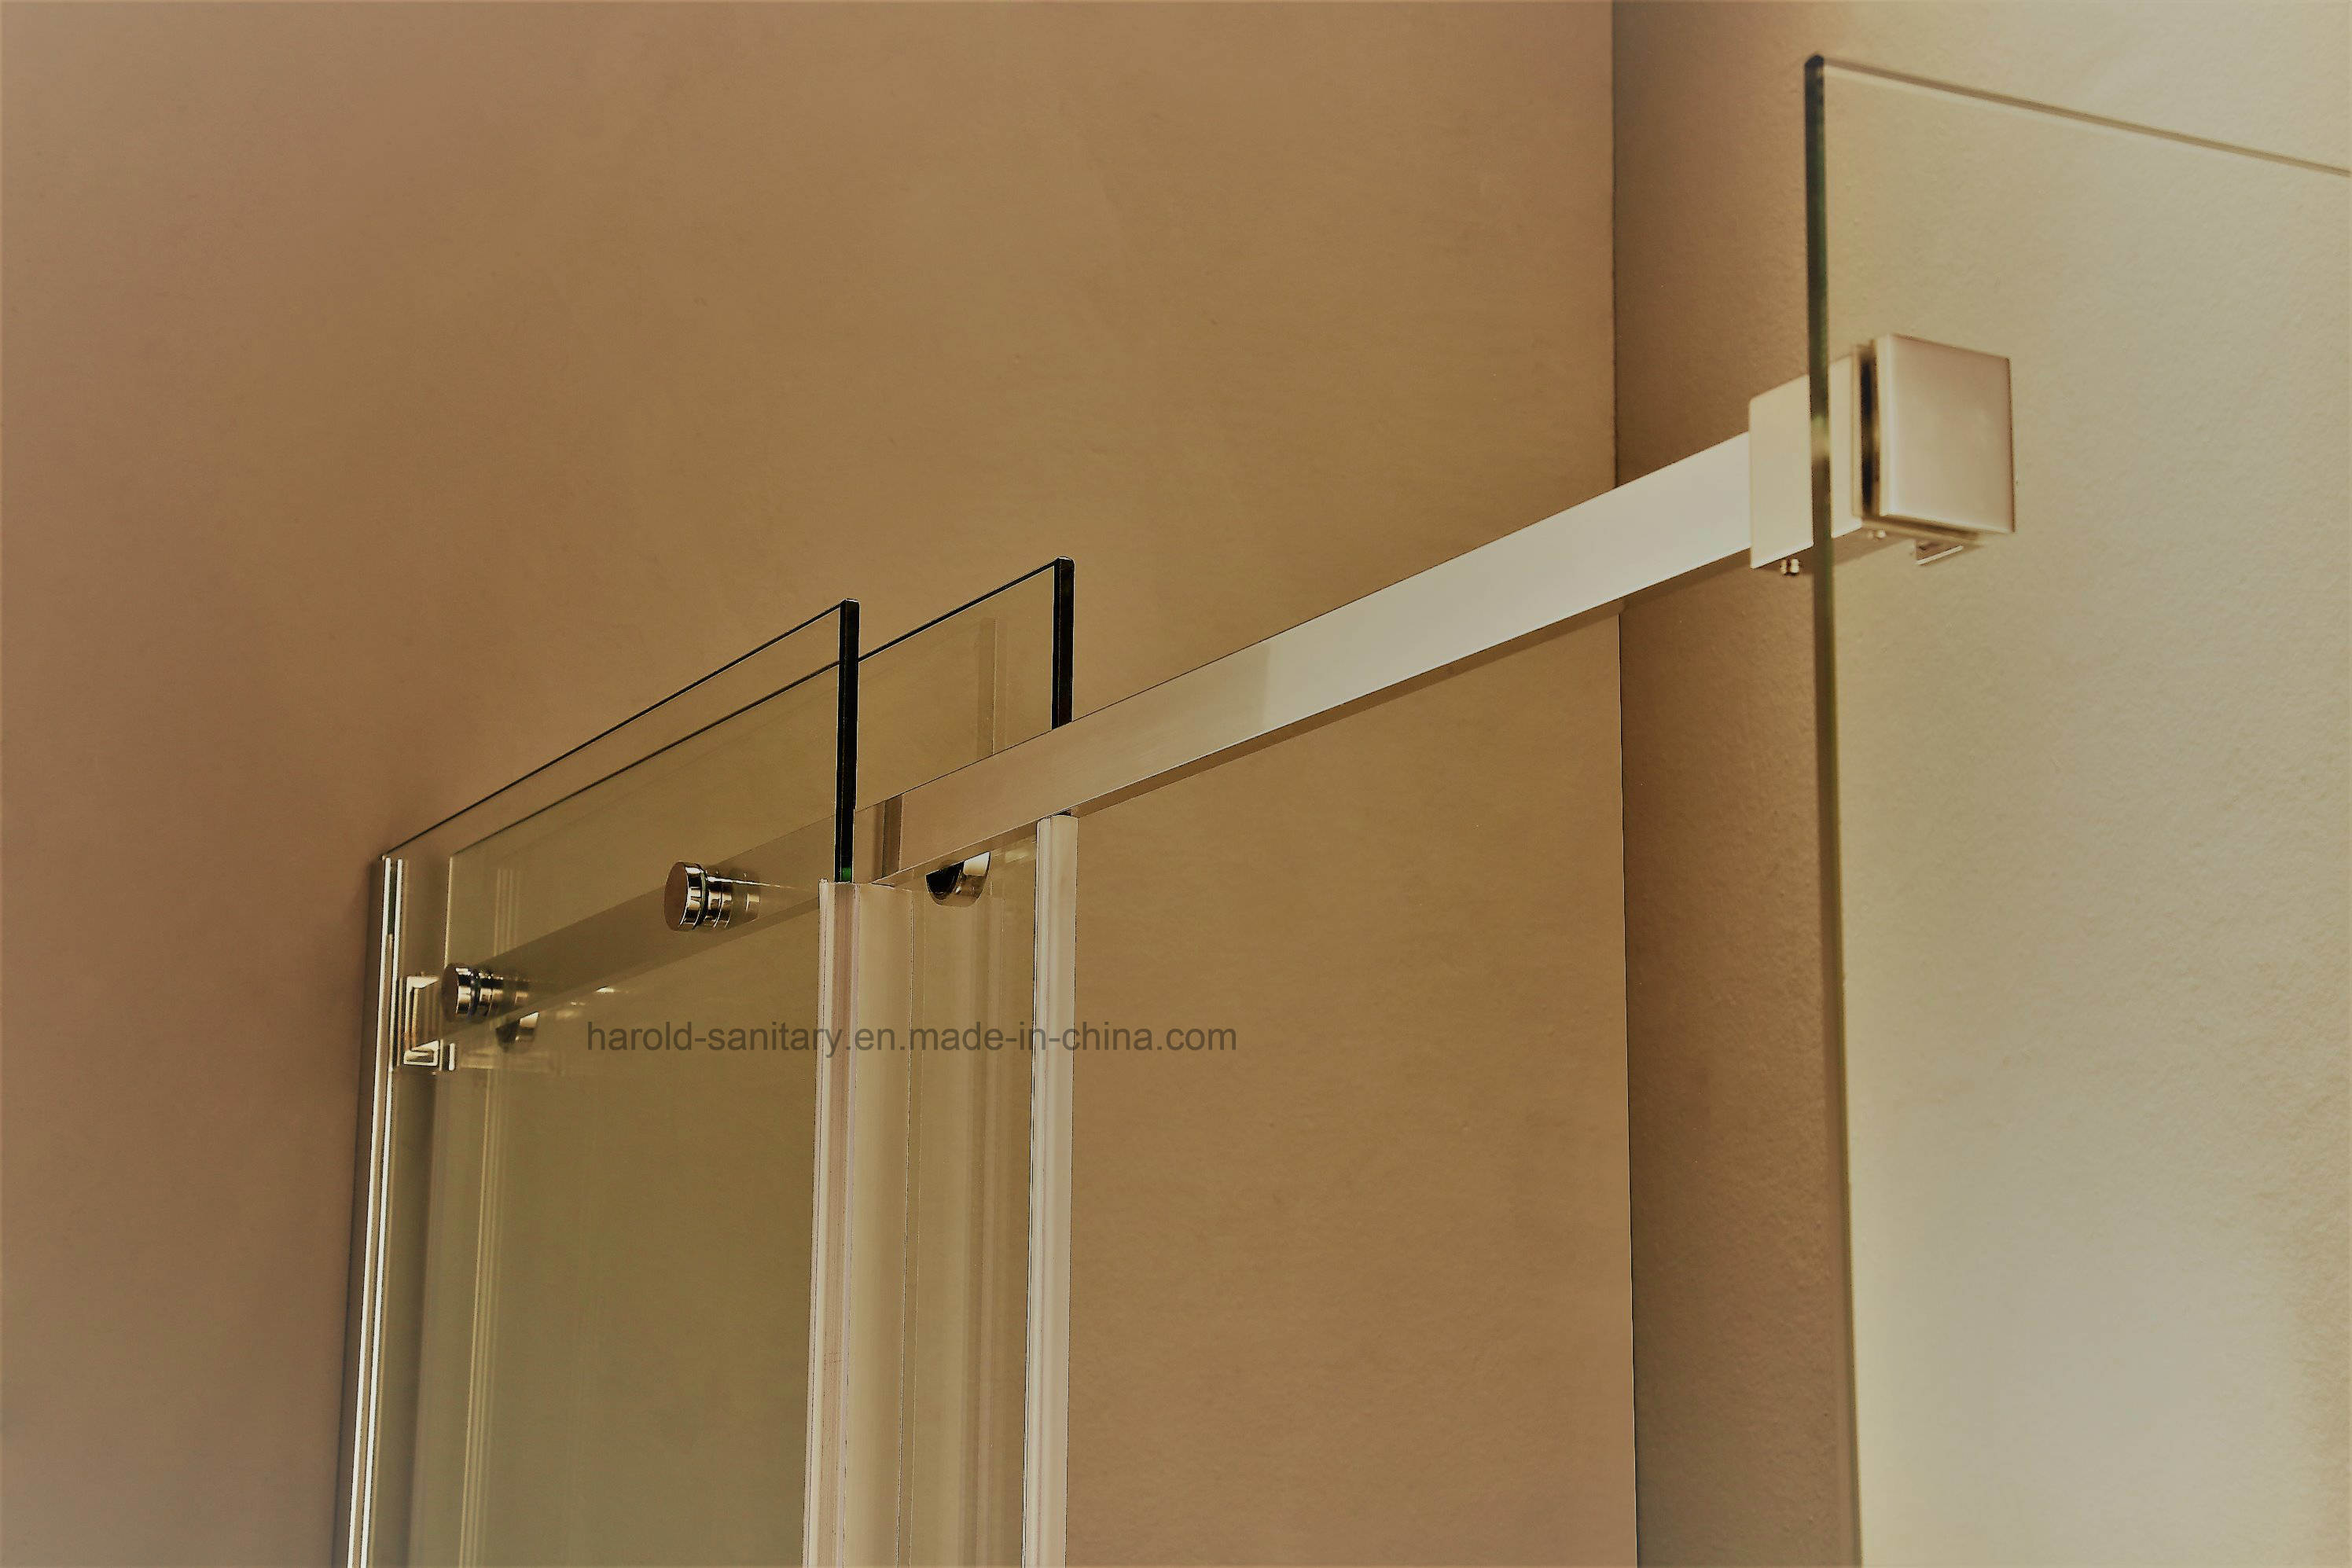 Hr-04 Frameless Single Sliding Shower Enclosure